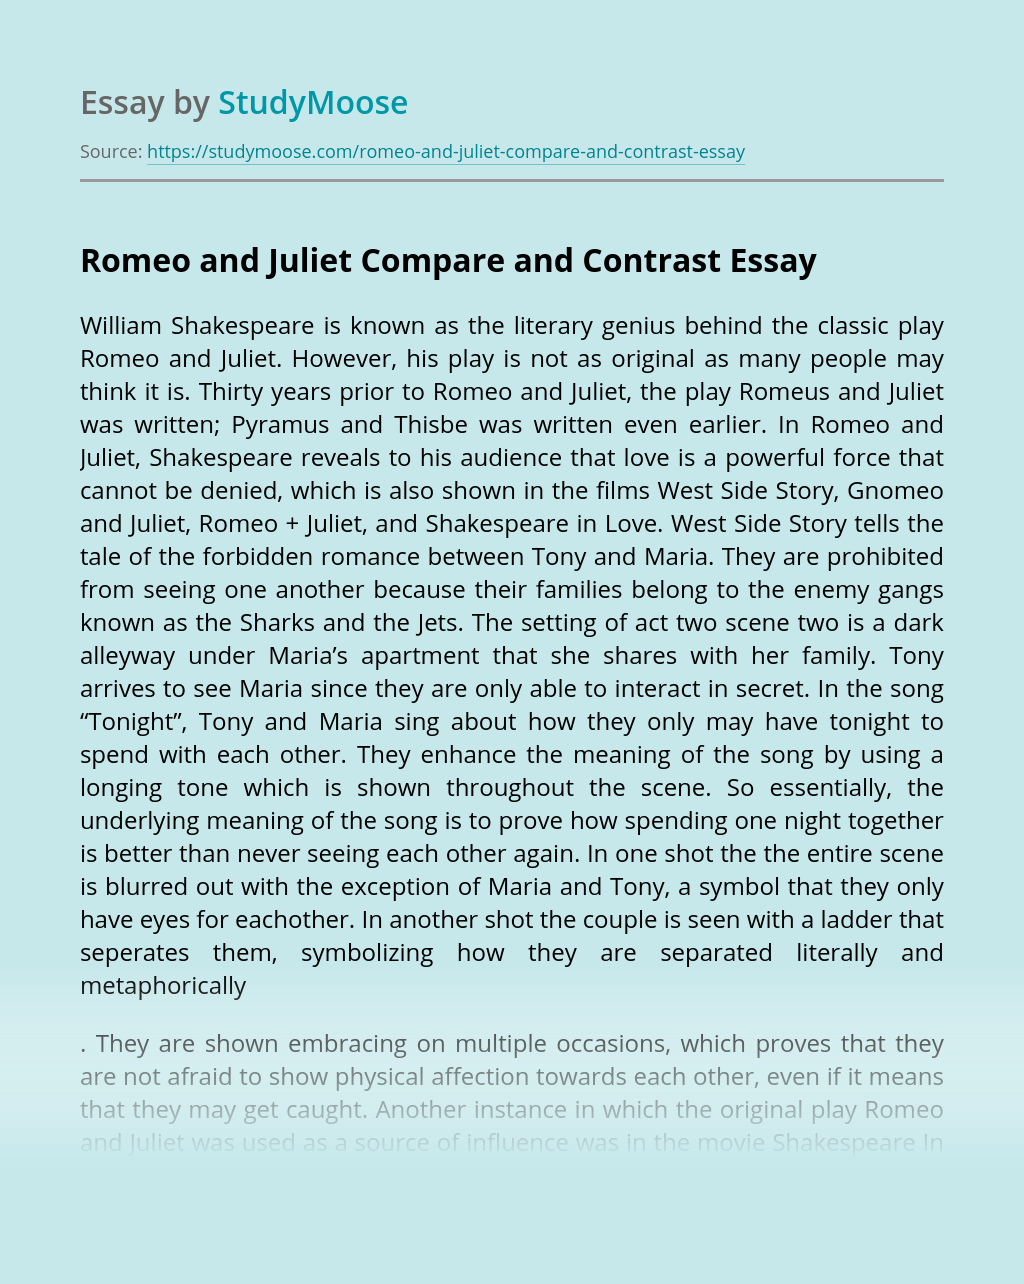 Romeo and Juliet Compare and Contrast